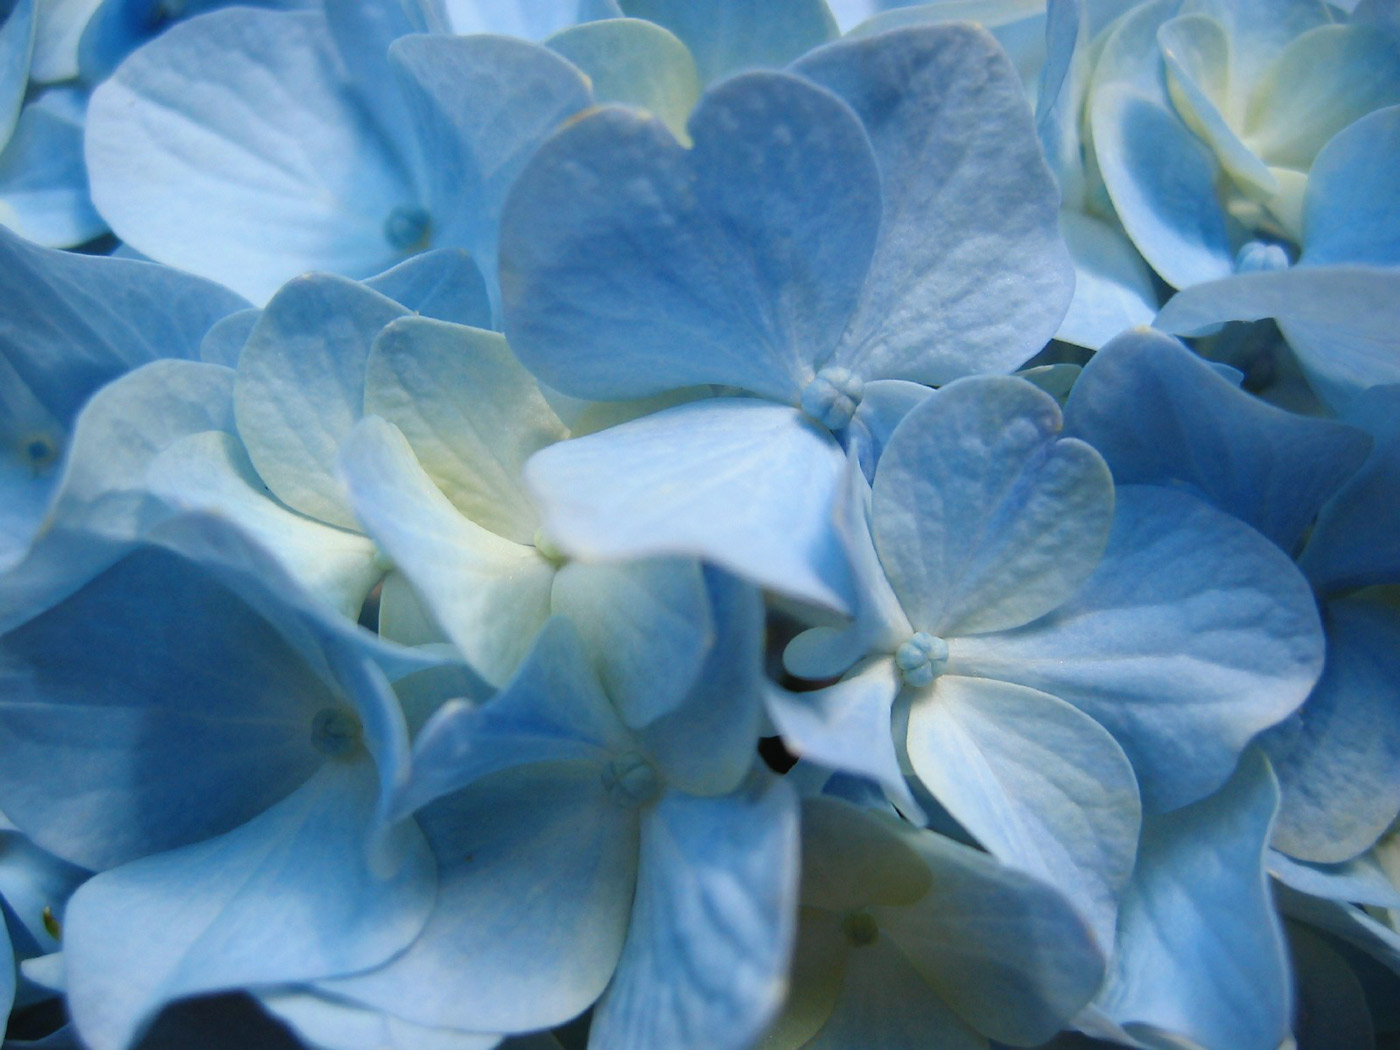 http://1.bp.blogspot.com/_OjGjAZZqaPM/TK4Ctb1bKGI/AAAAAAAAABU/av_PDVWtS6U/s1600/blue_hydrangea_flower,_close-up_photography.jpg